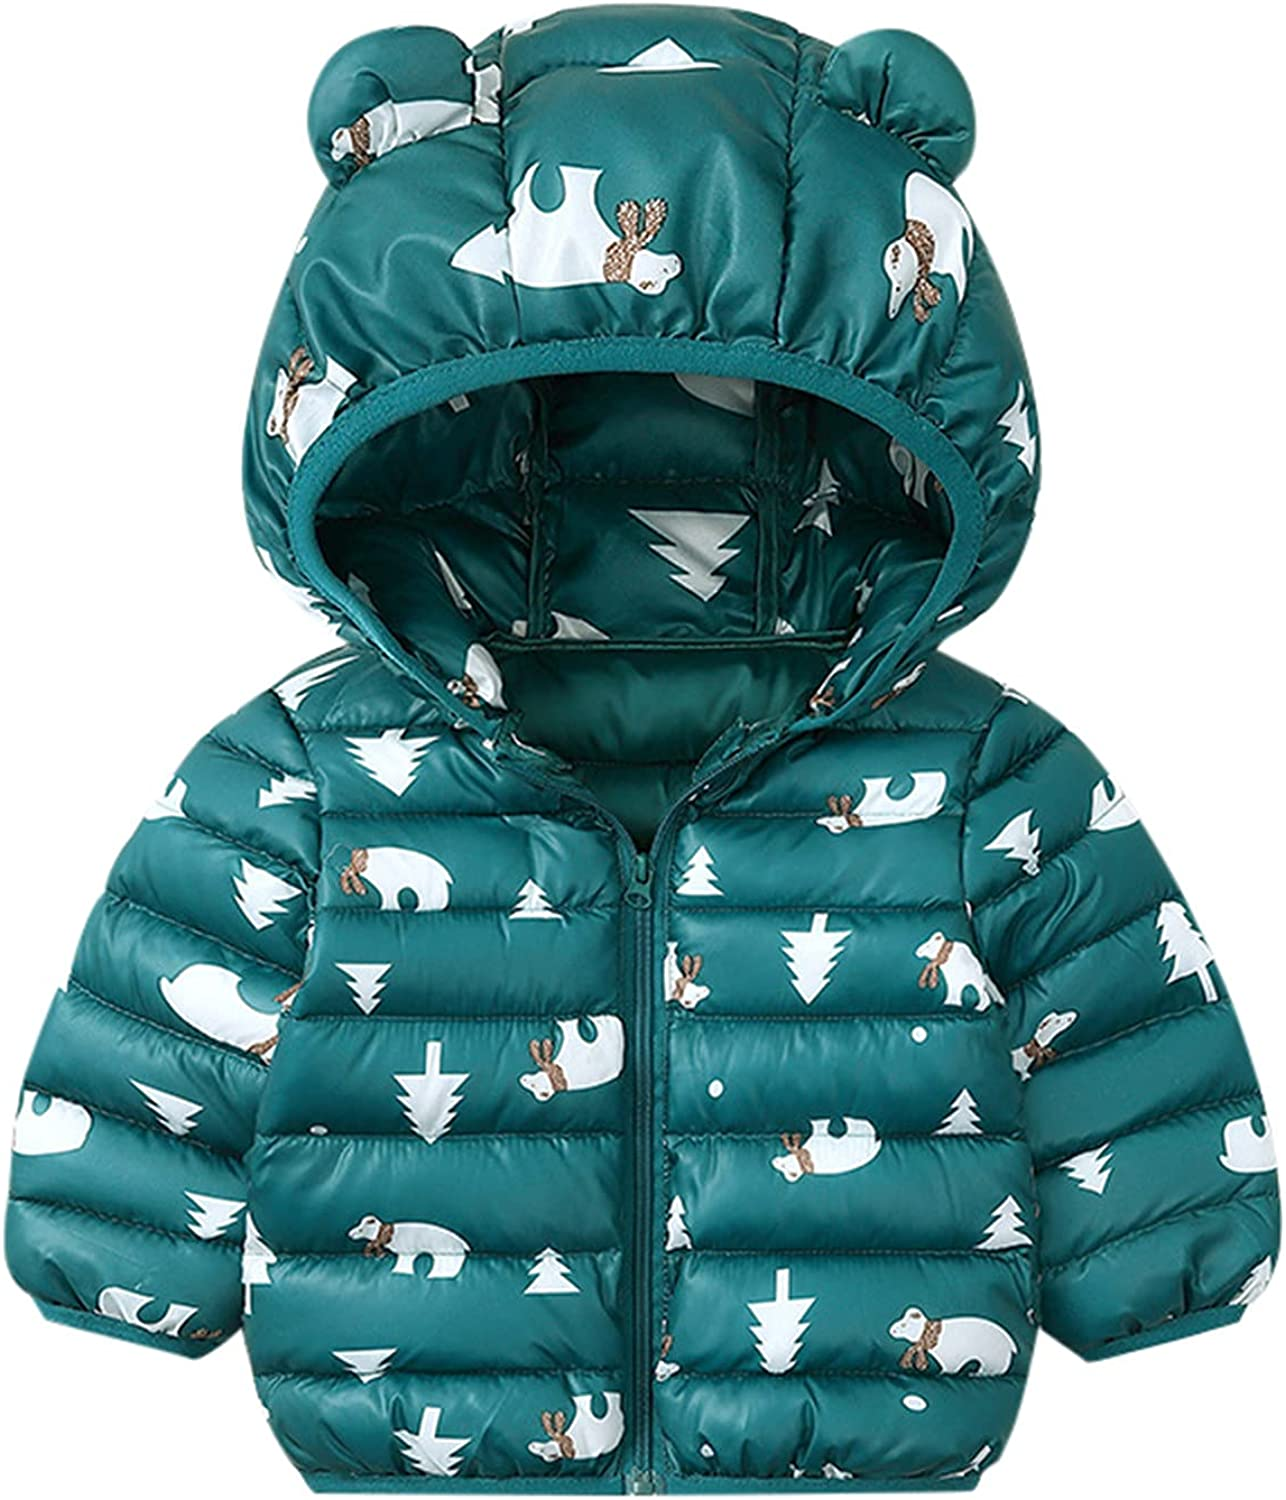 YOYO.RI Toddler Large special price Baby Bear Ear Hooded Excellent Girl Coat - Infant Bo Print